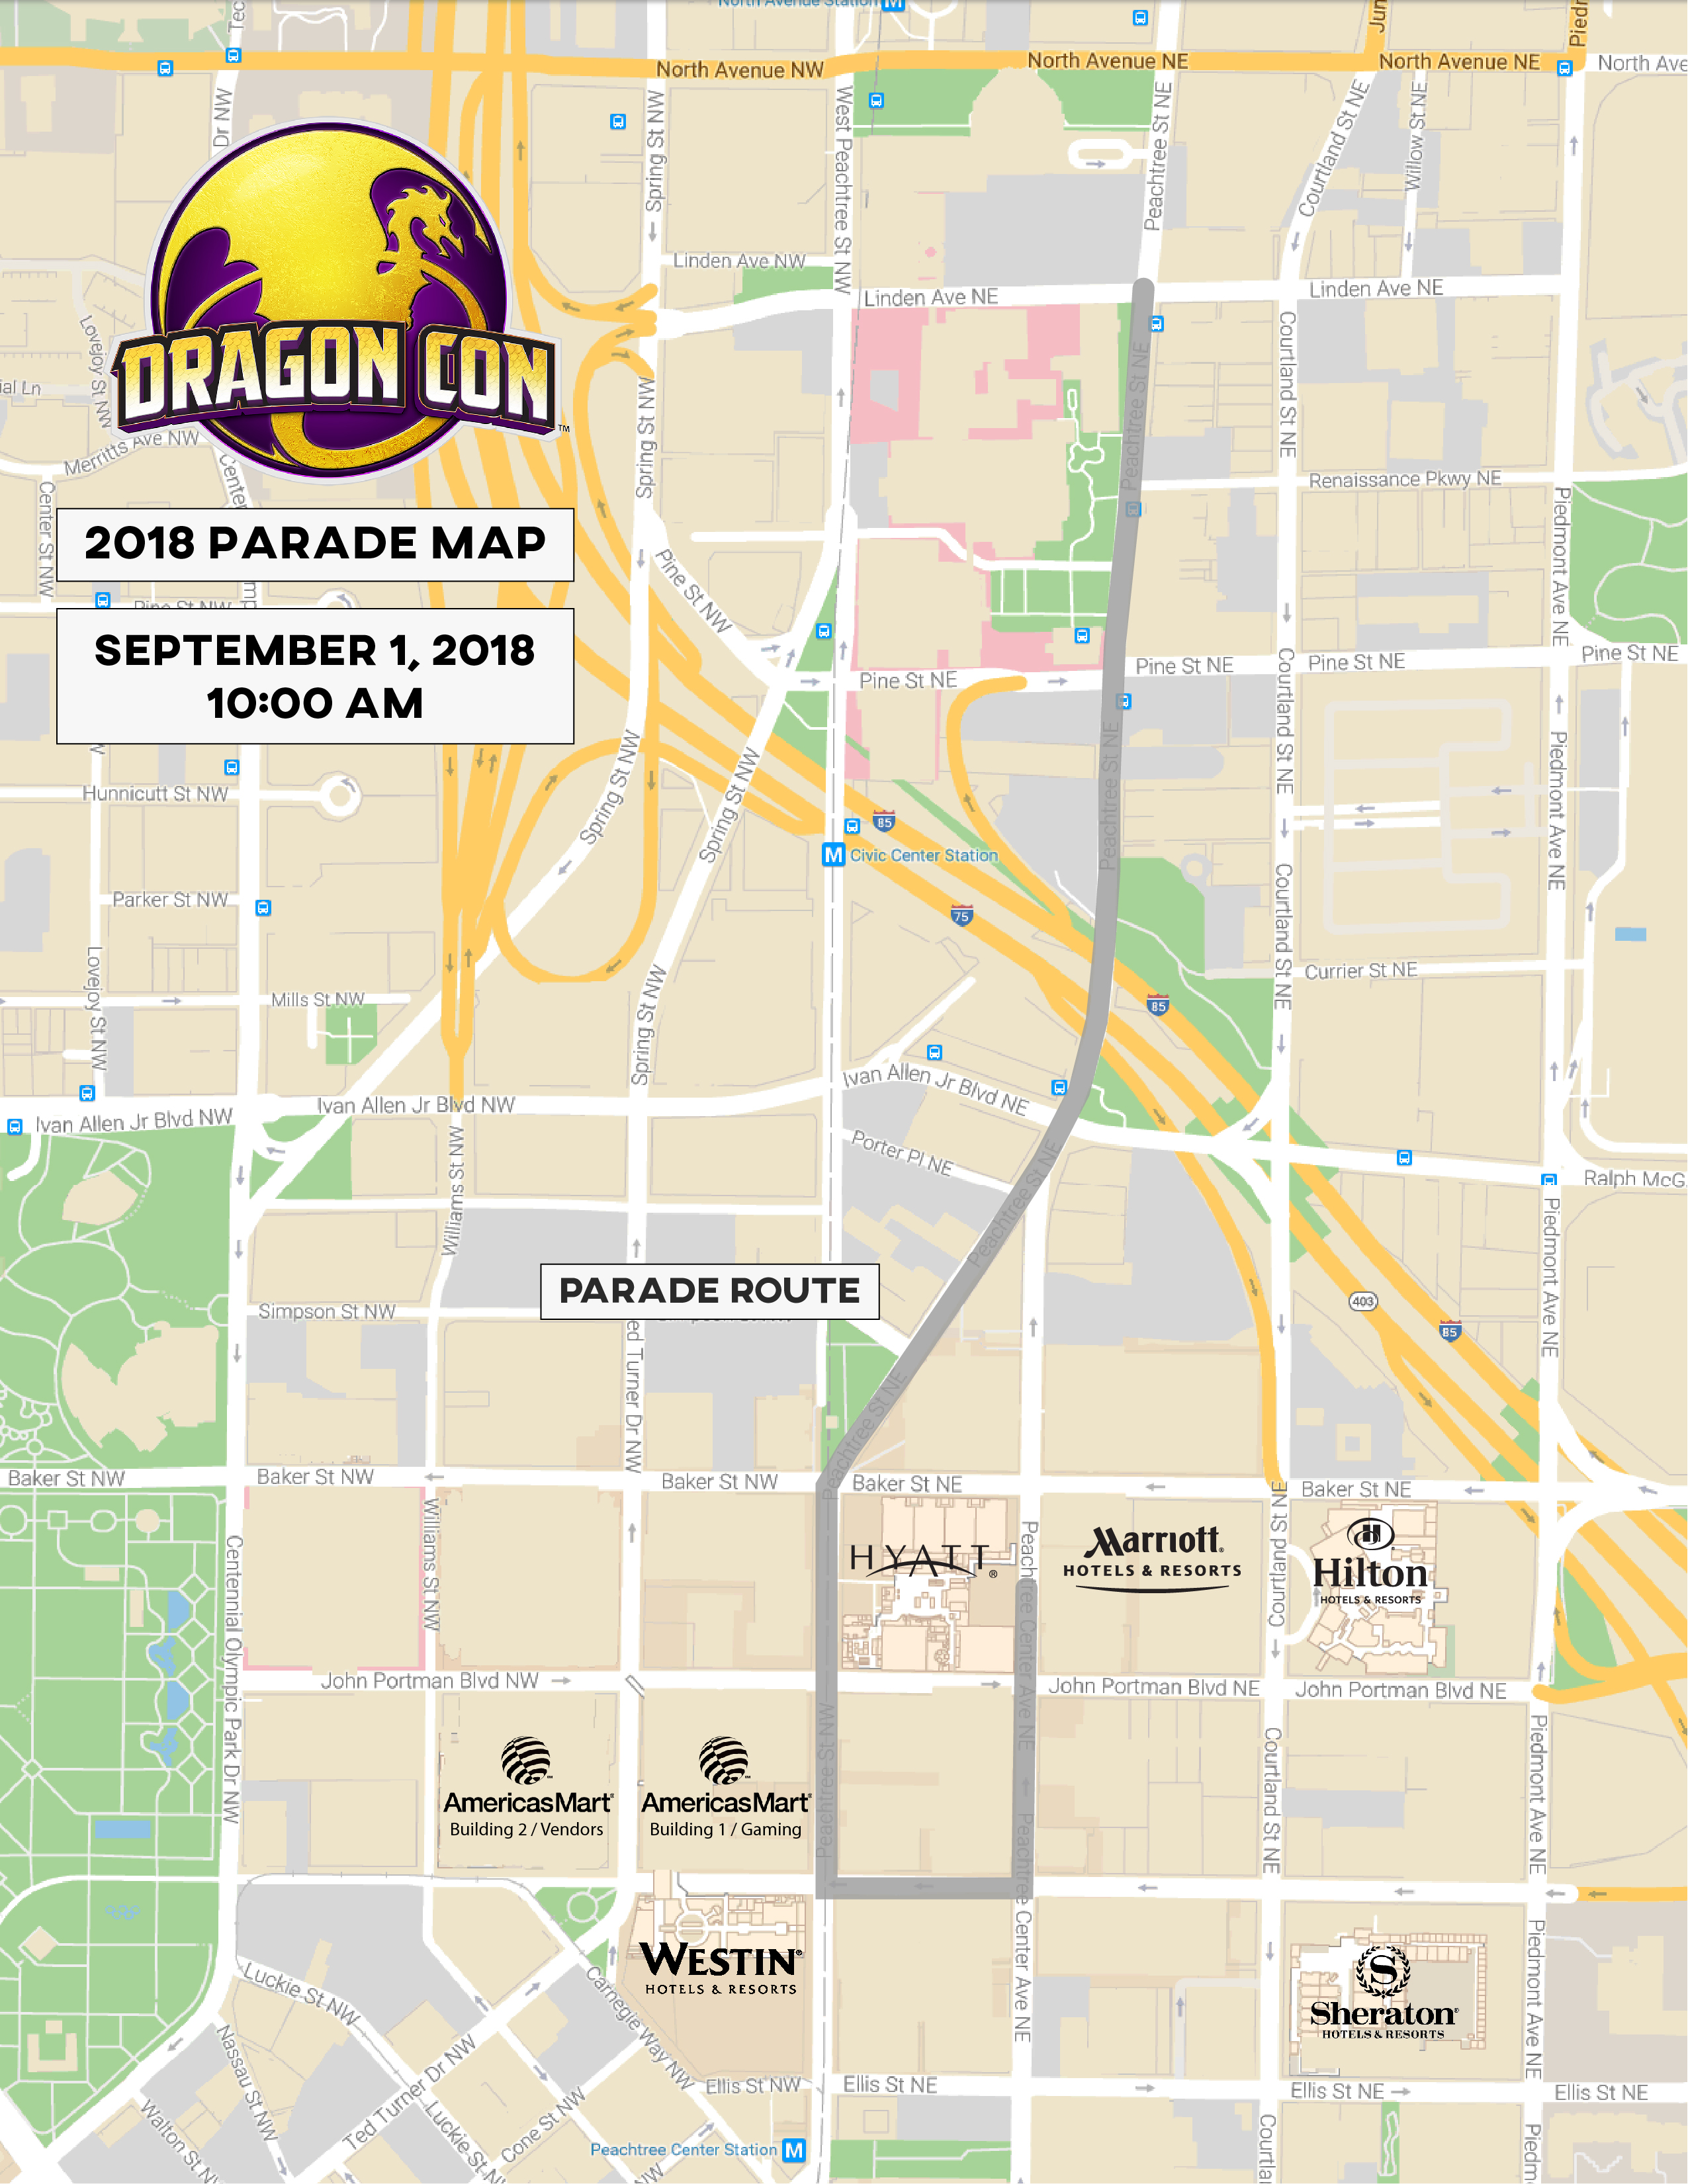 2018 Dragon Con Parade Route